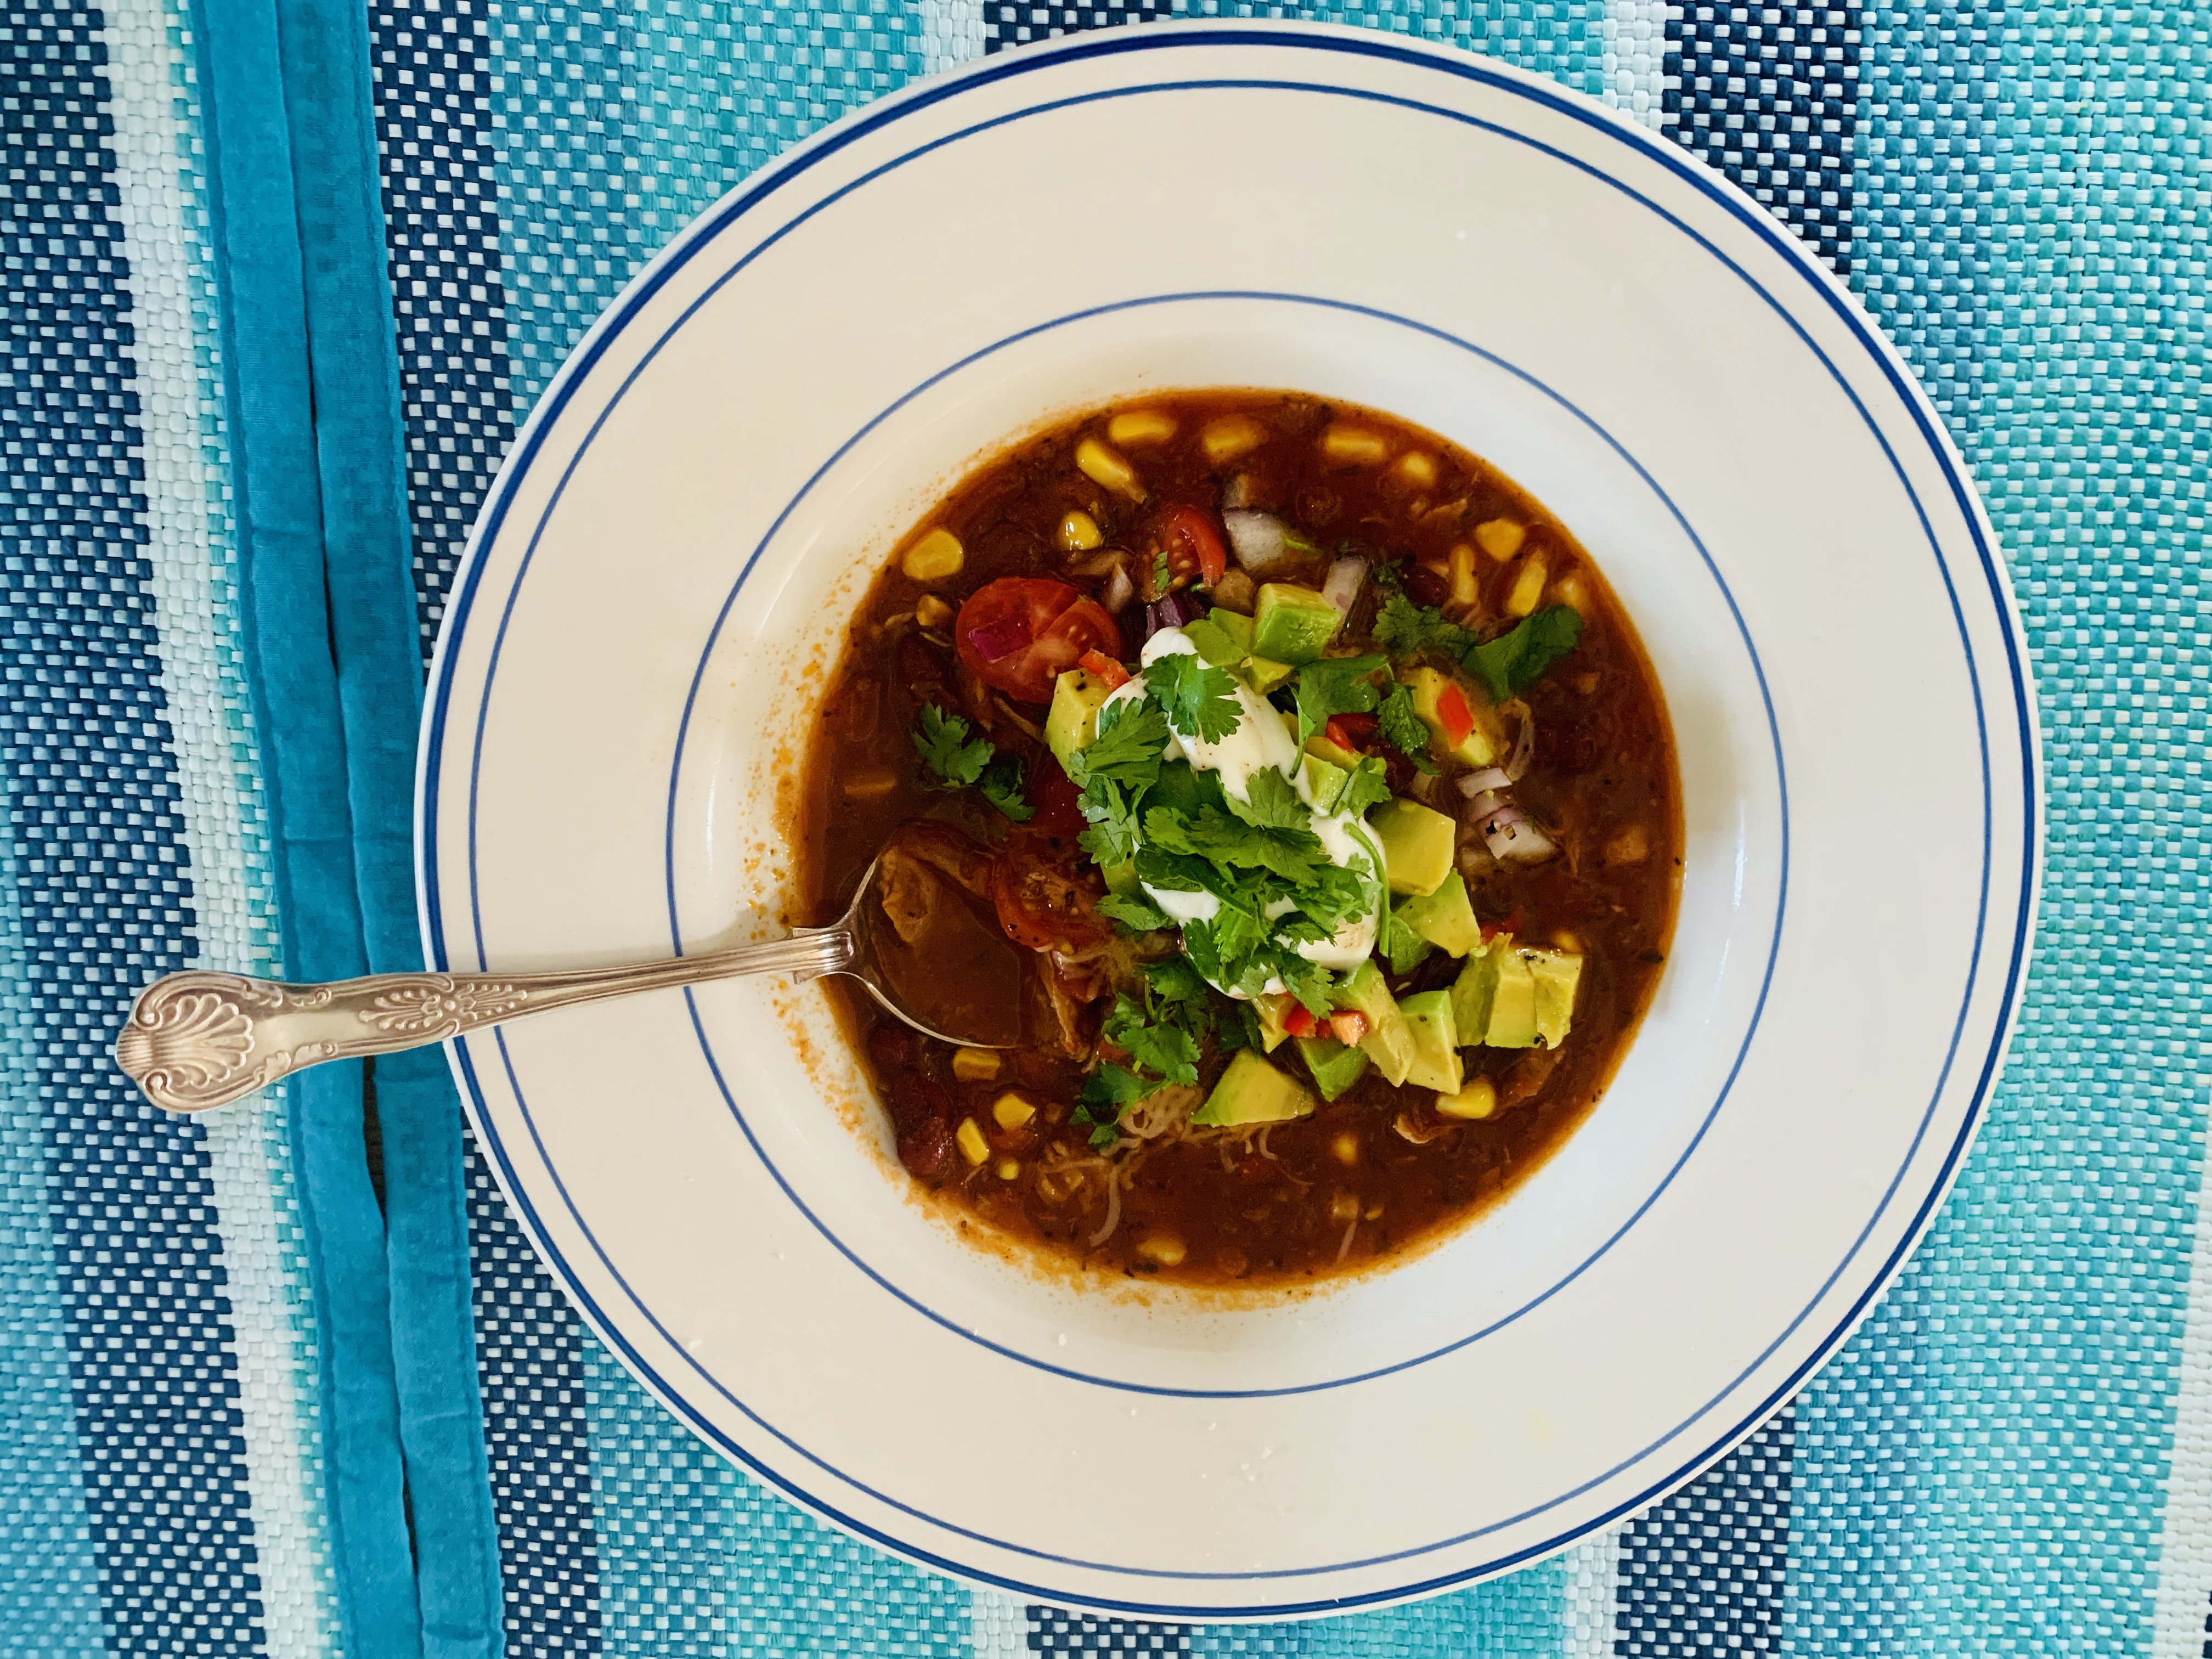 Spicy Mexican Chicken and Corn Soup - Image 3